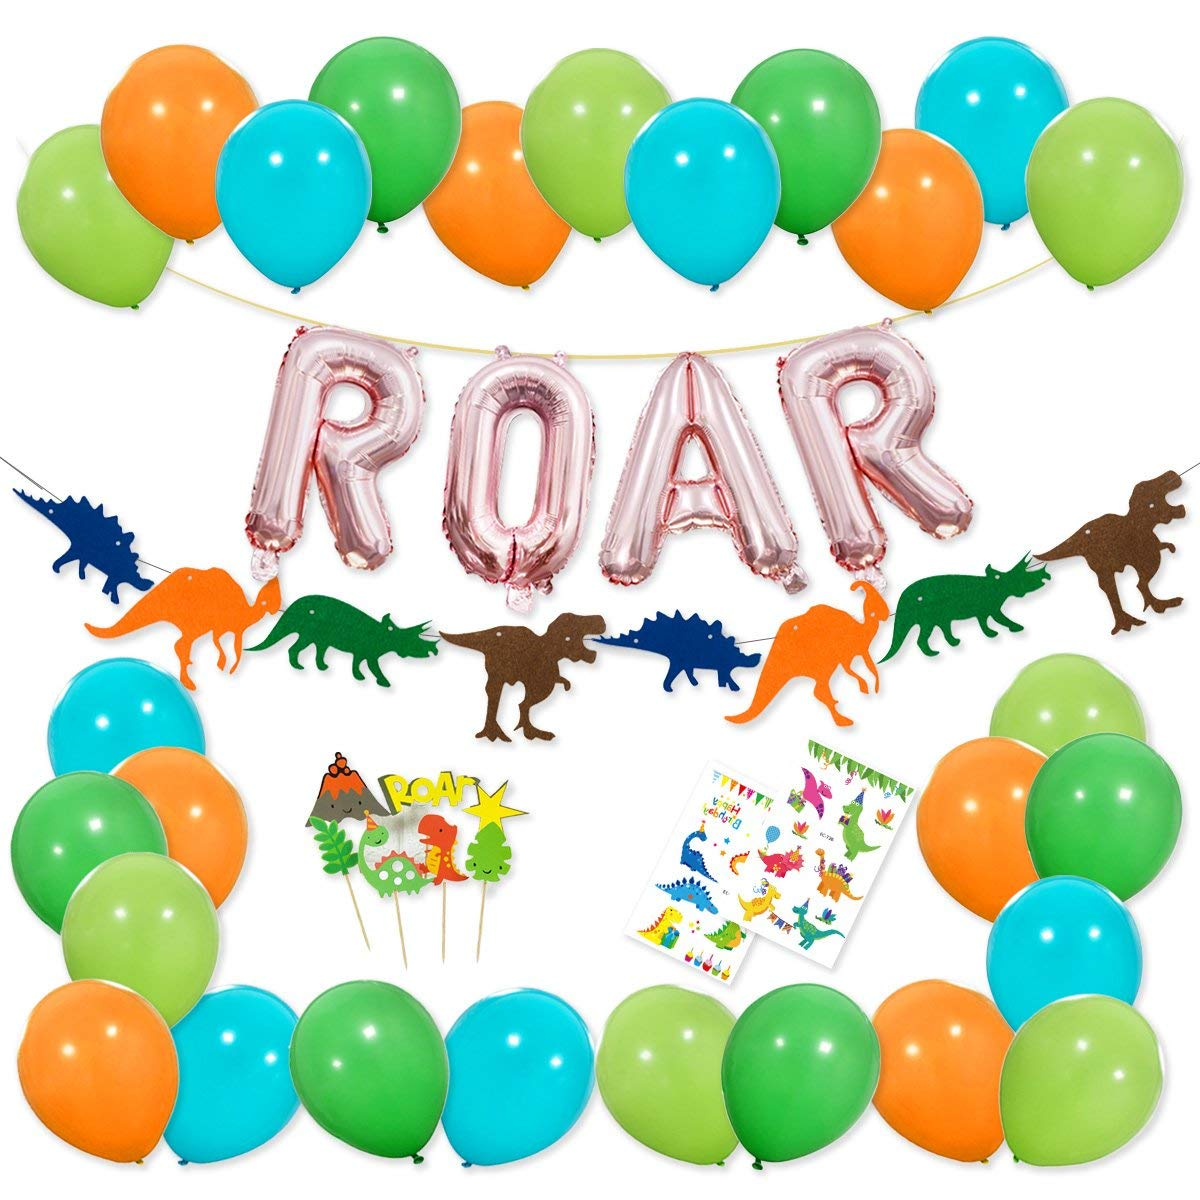 16 inch Rose Gold ROAR Banner Mylar Balloons Colorful Felt Garland Dinosaur Party Cake Topper and Latex Balloons with Tattoo